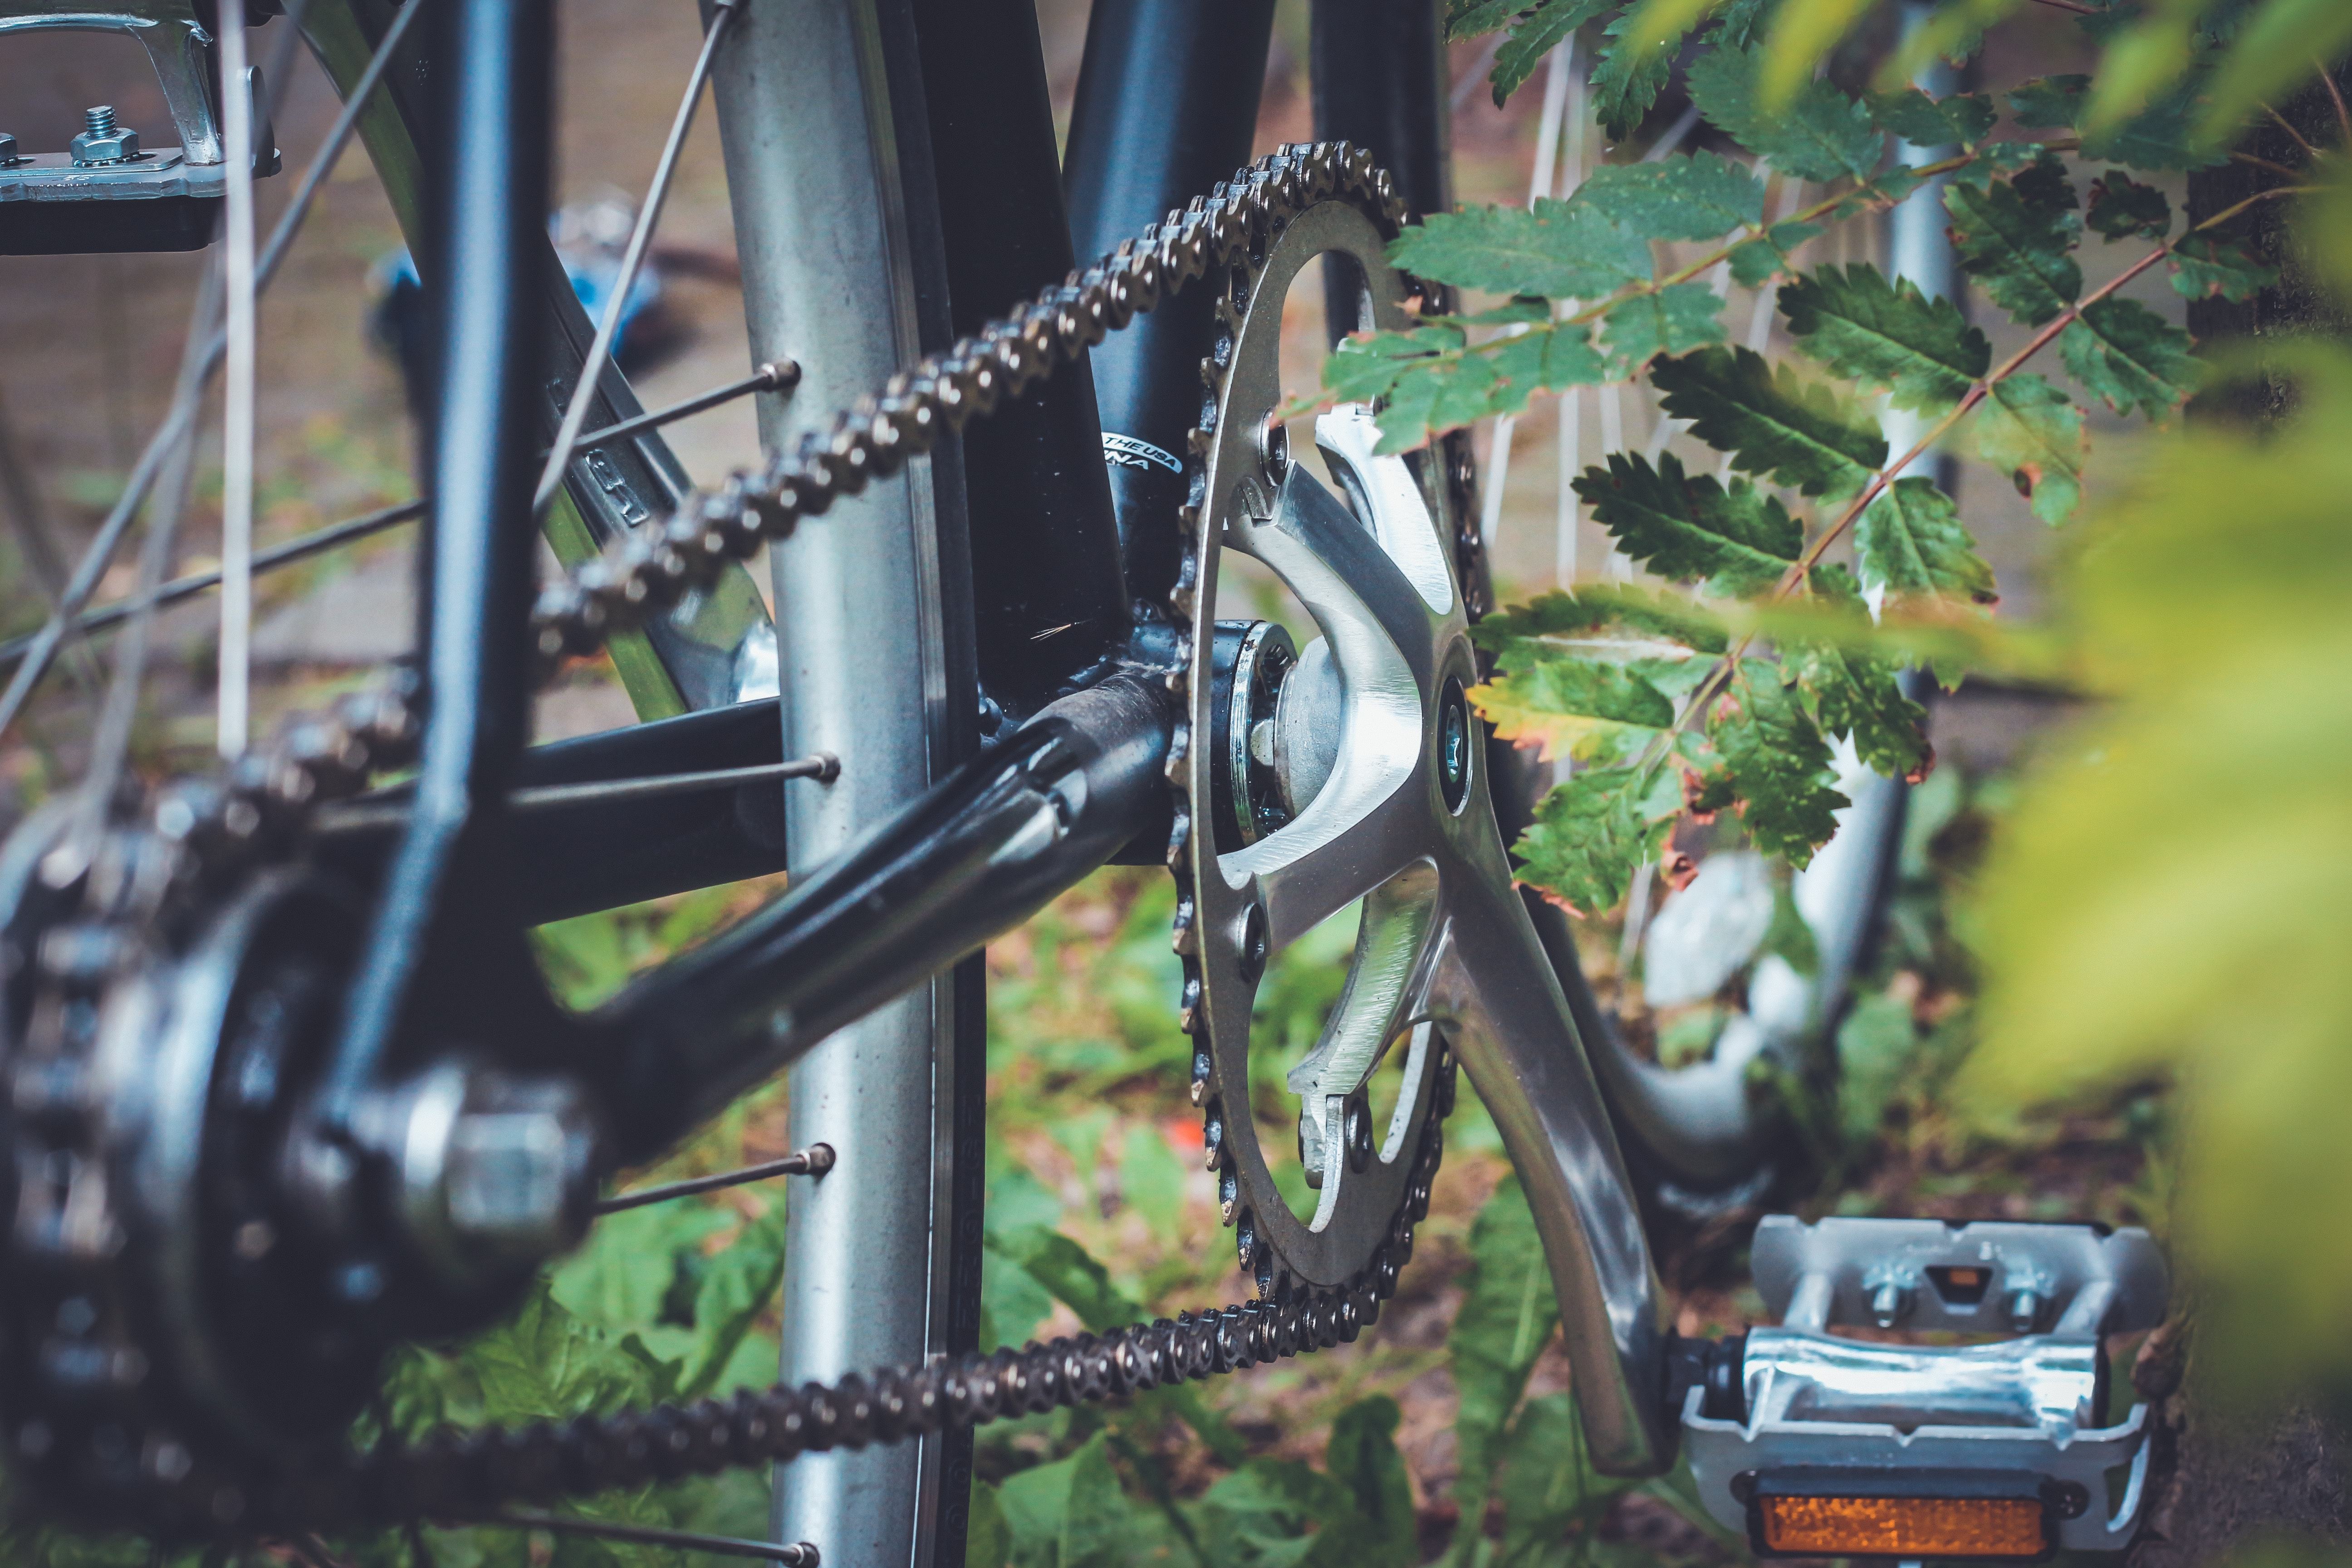 Low show of chains and pedals on a bicycle